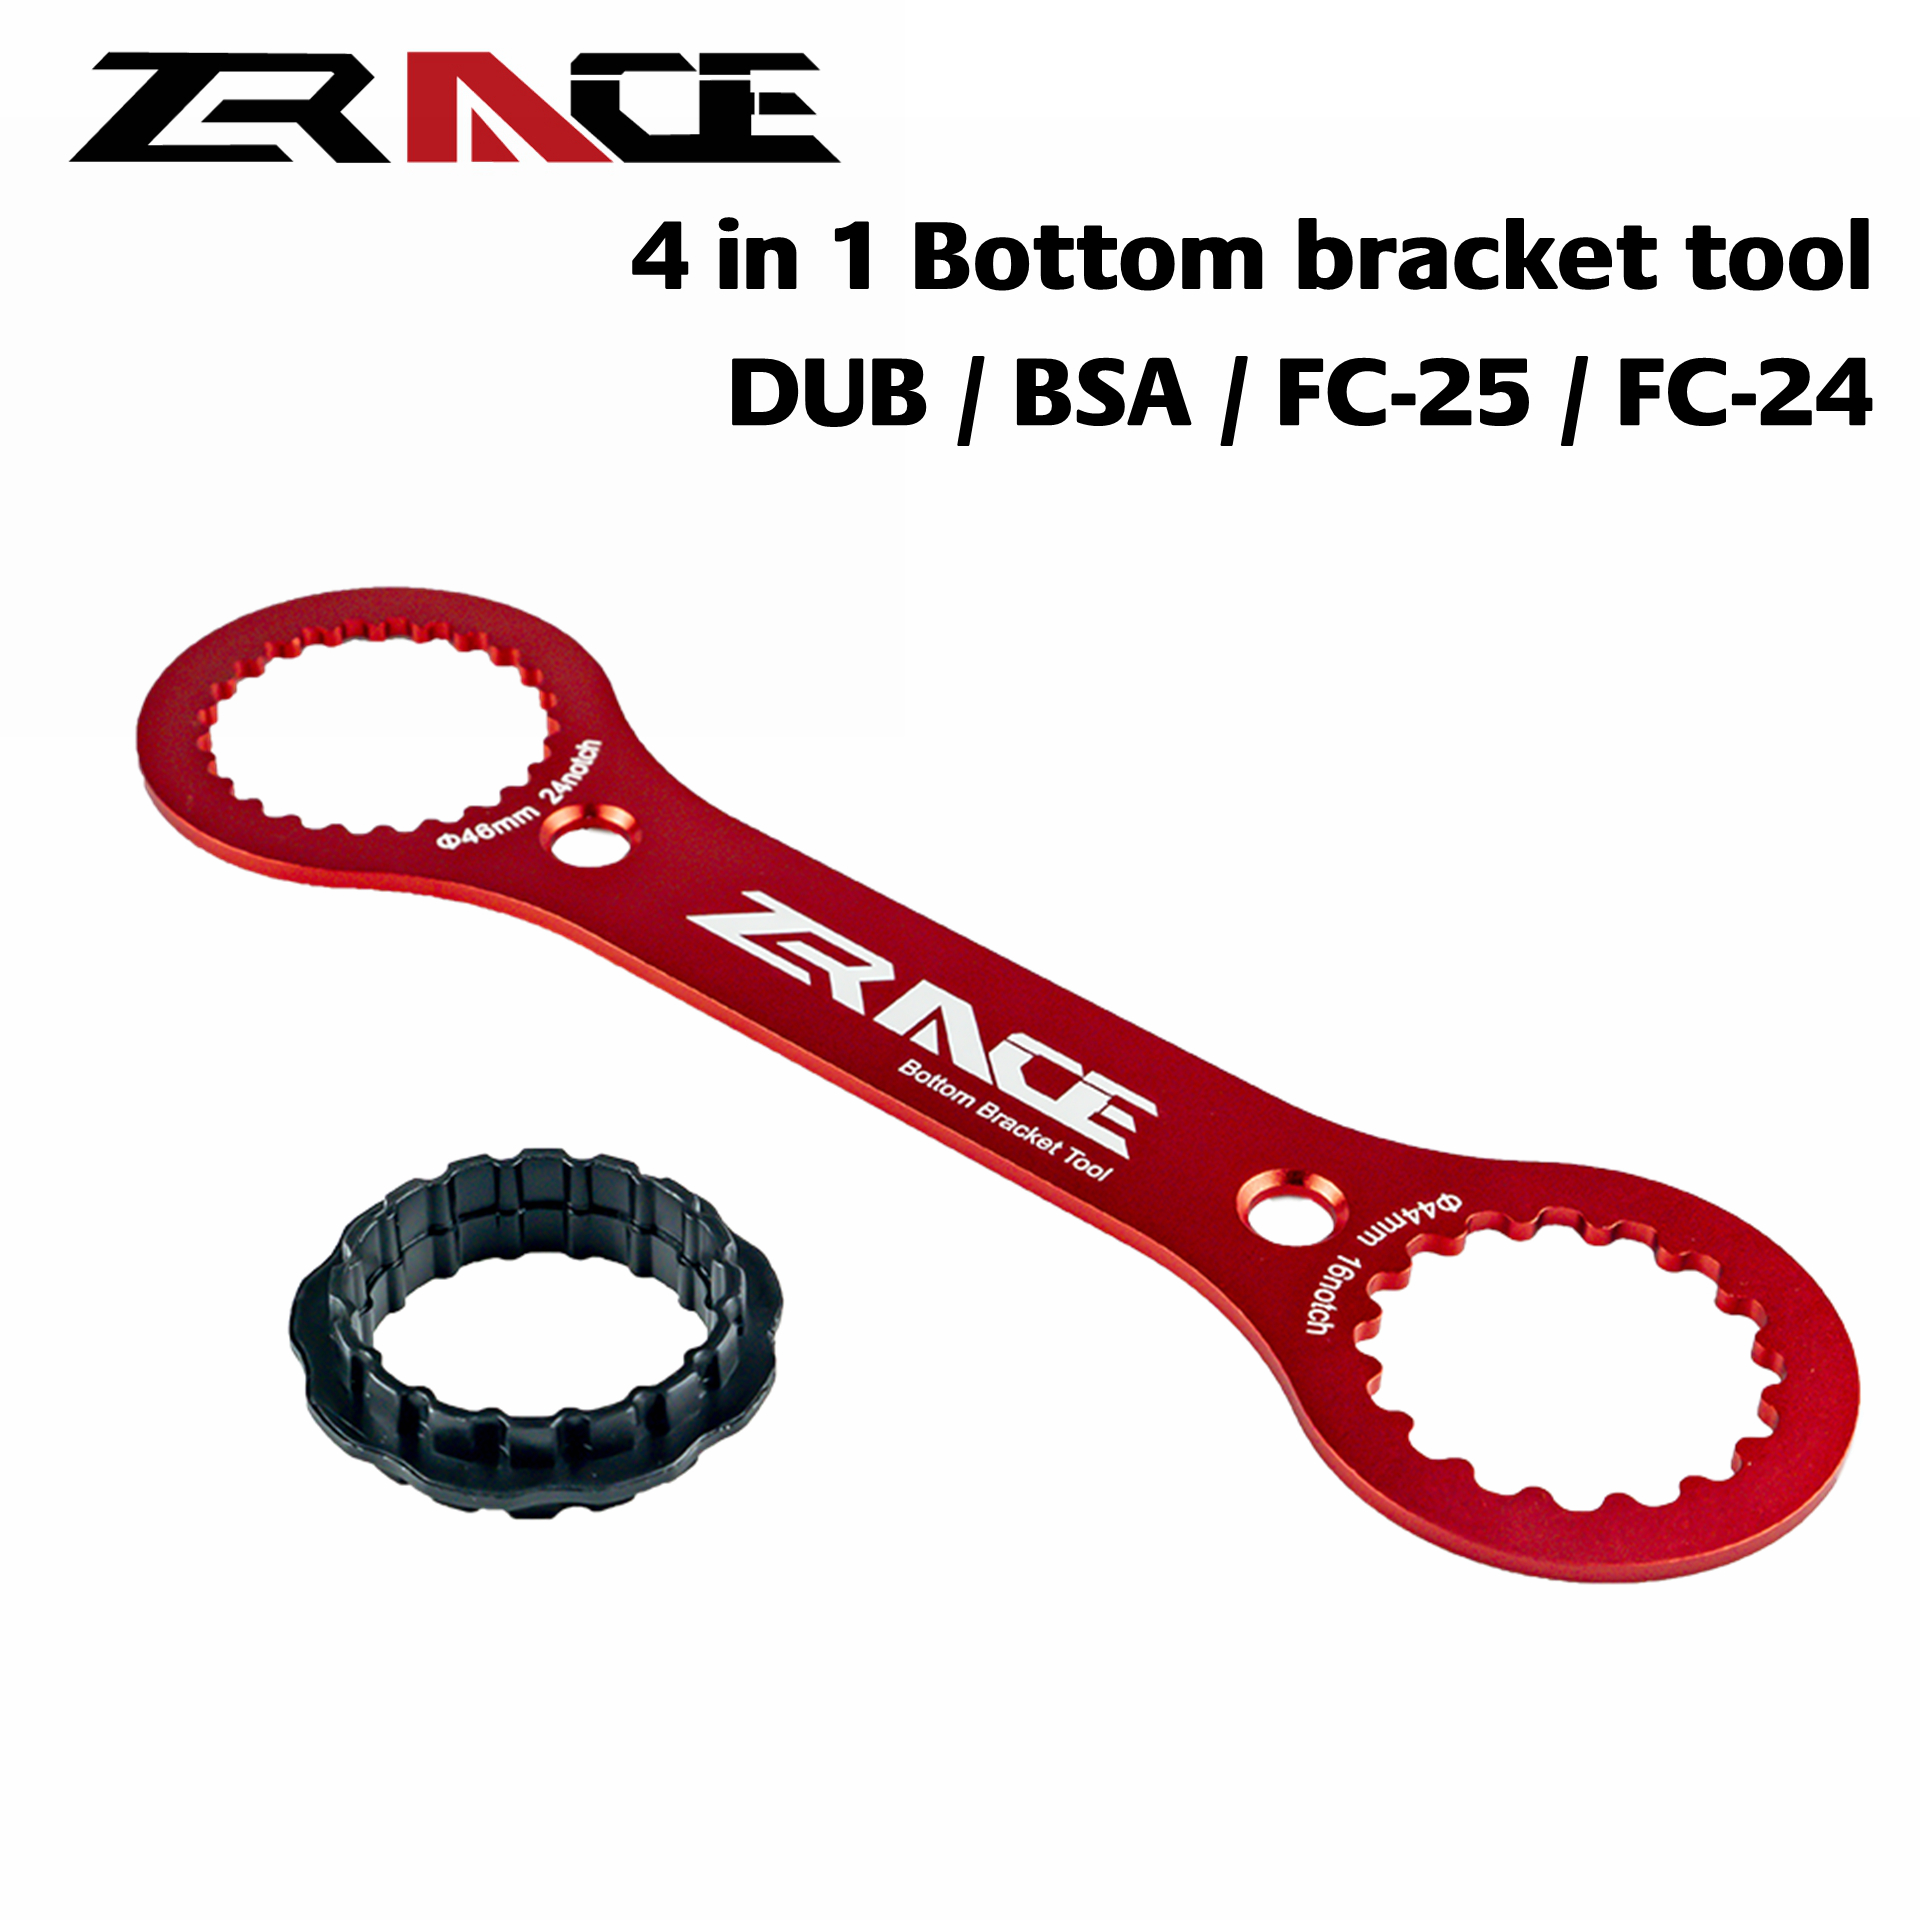 ZRACE 4 In 1 Bottom Bracket Wrench Tool , Compatible With SRAM DUB, SHIMANO BSA / FC-25 / FC-24, CNC AL7075  DUB-BSA TOOLS